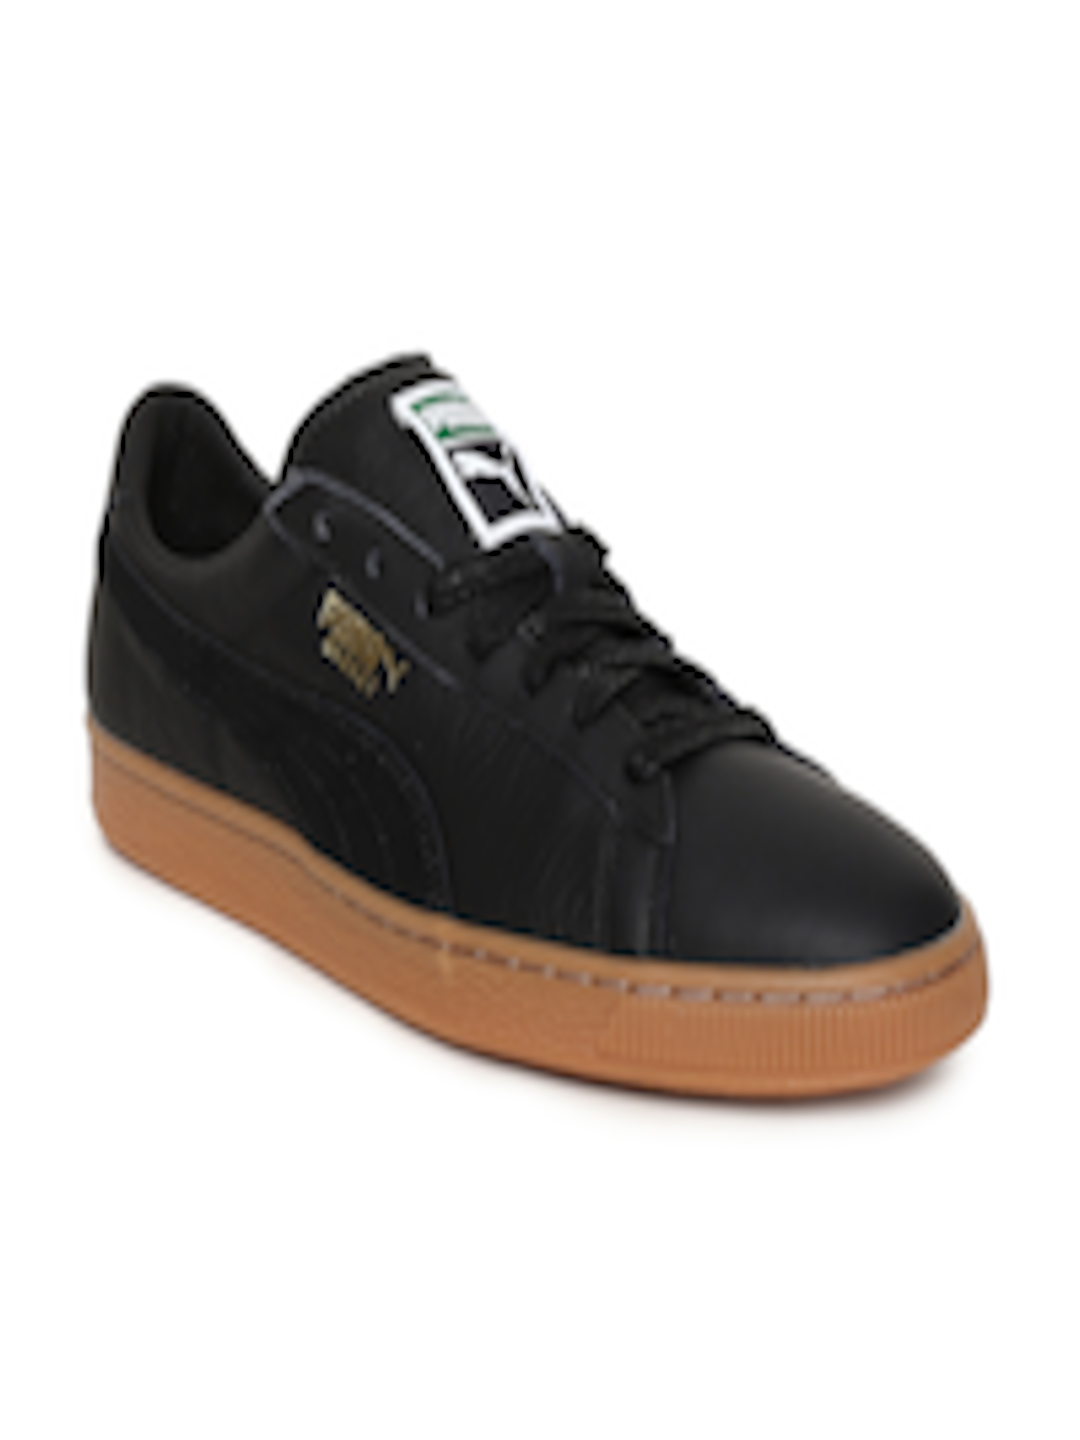 size 40 49bca 534dd Buy Puma Men Black Basket Classic Gum Deluxe Sneakers - Casual Shoes for  Men 2429575   Myntra